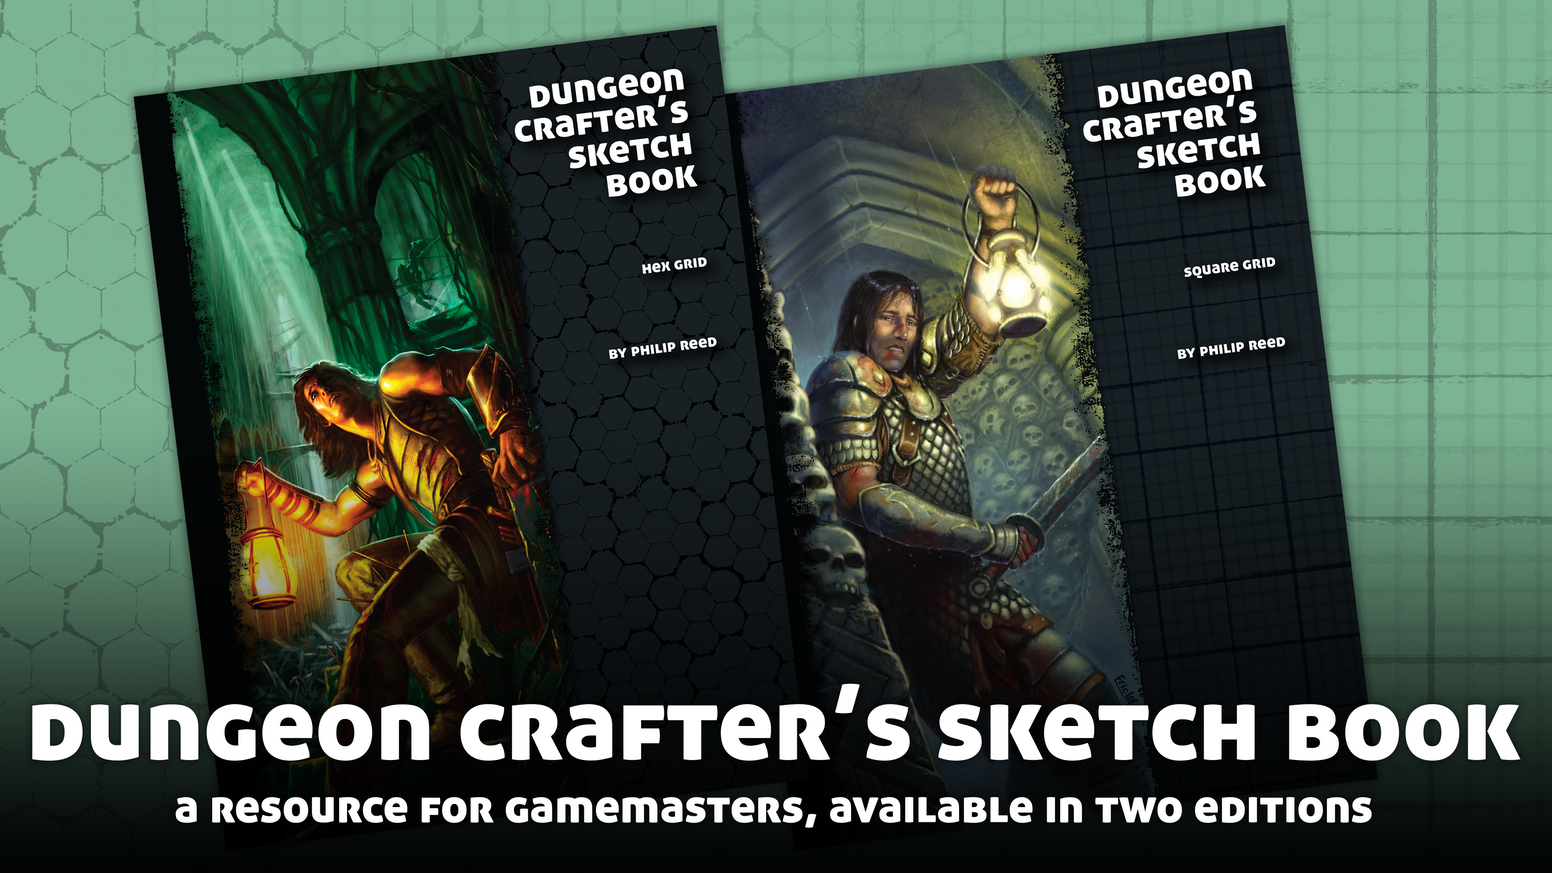 A saddle-stitched book with space for your dungeon ideas. For use with almost any fantasy roleplaying game.